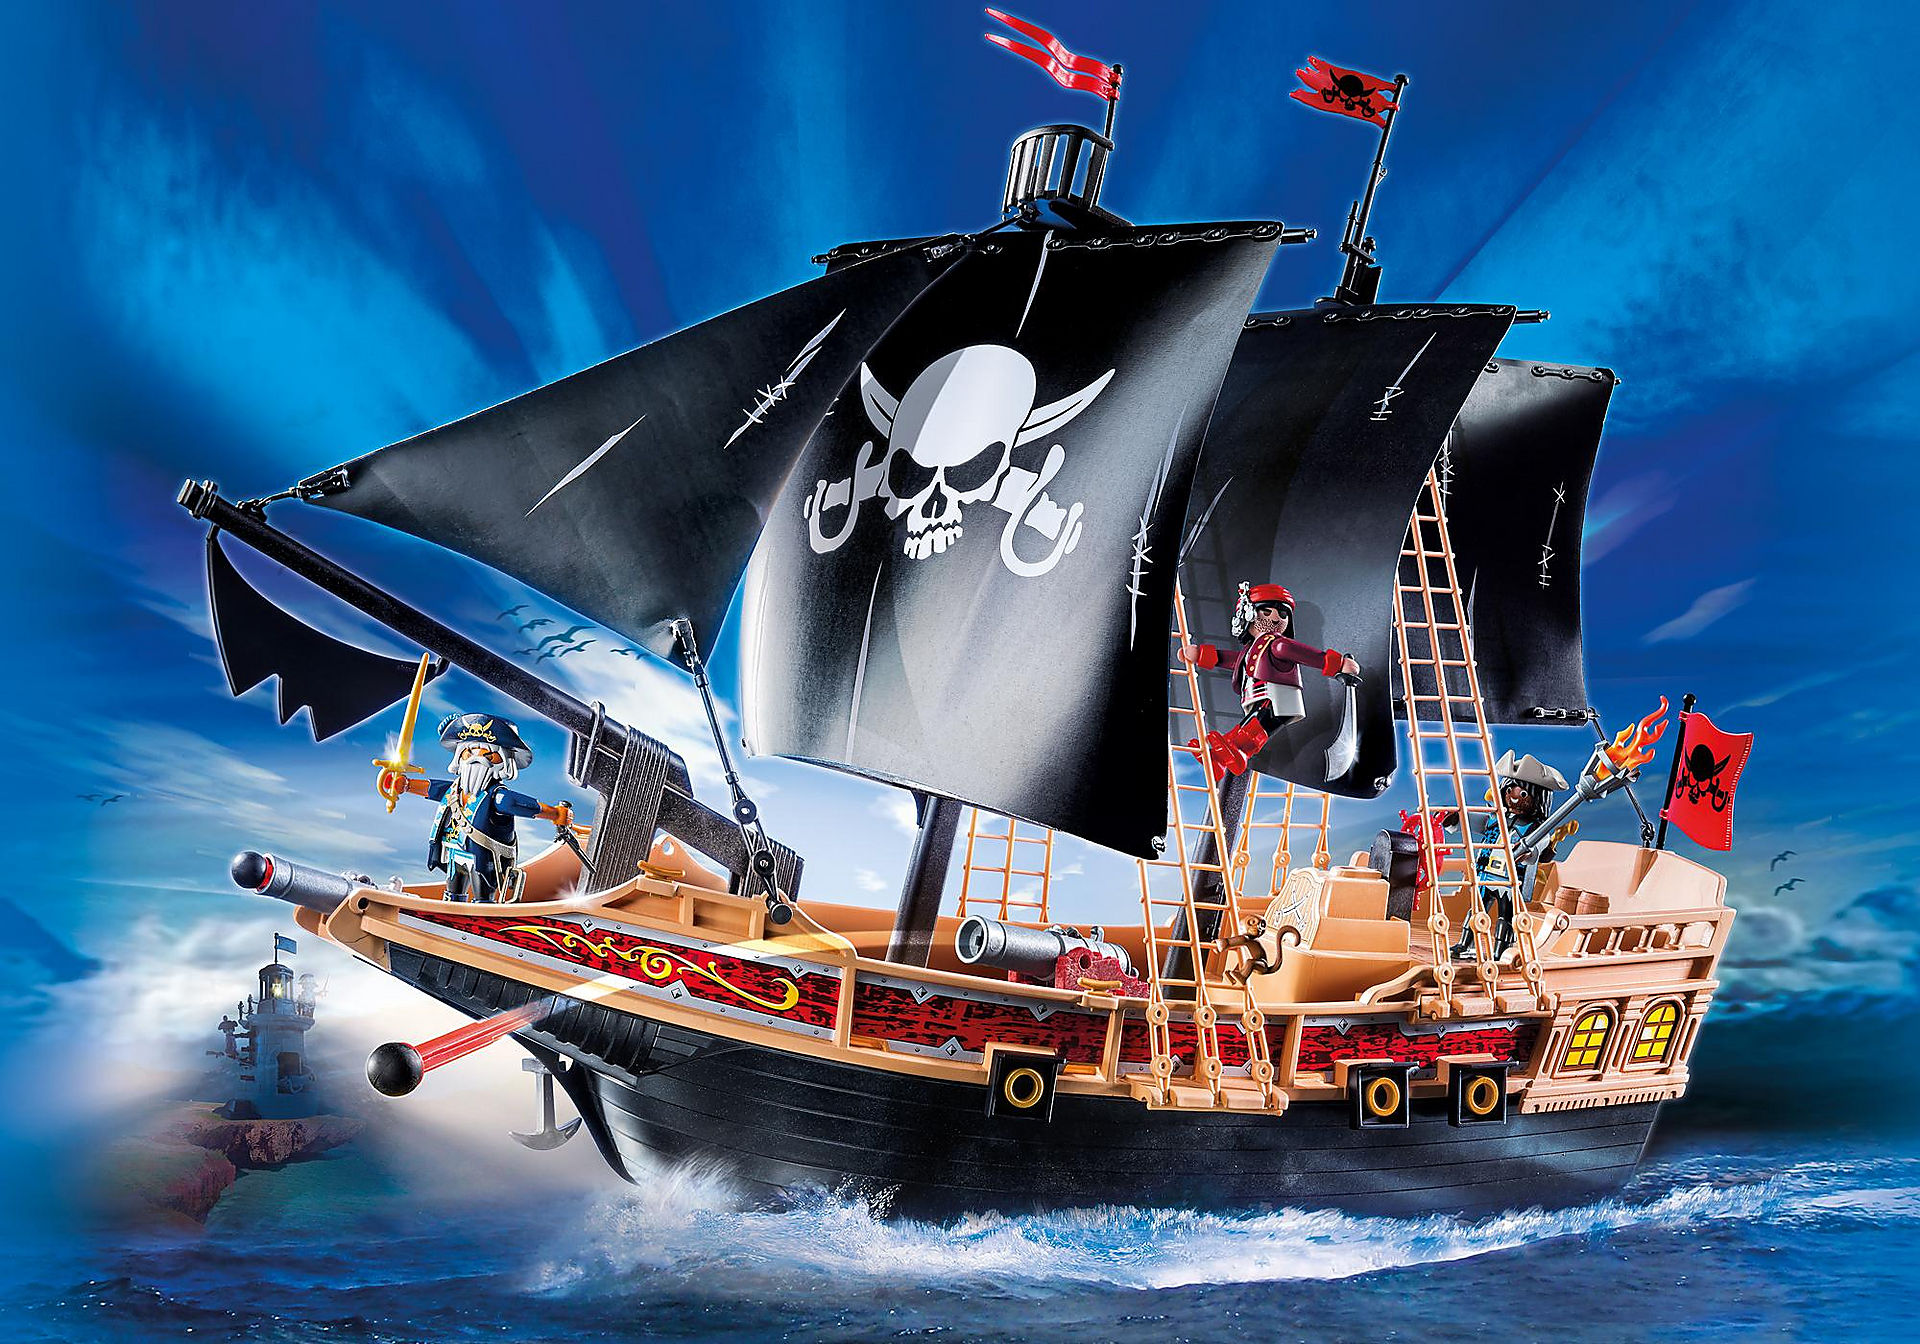 http://media.playmobil.com/i/playmobil/6678_product_detail/Barco de Ataque dos Piratas